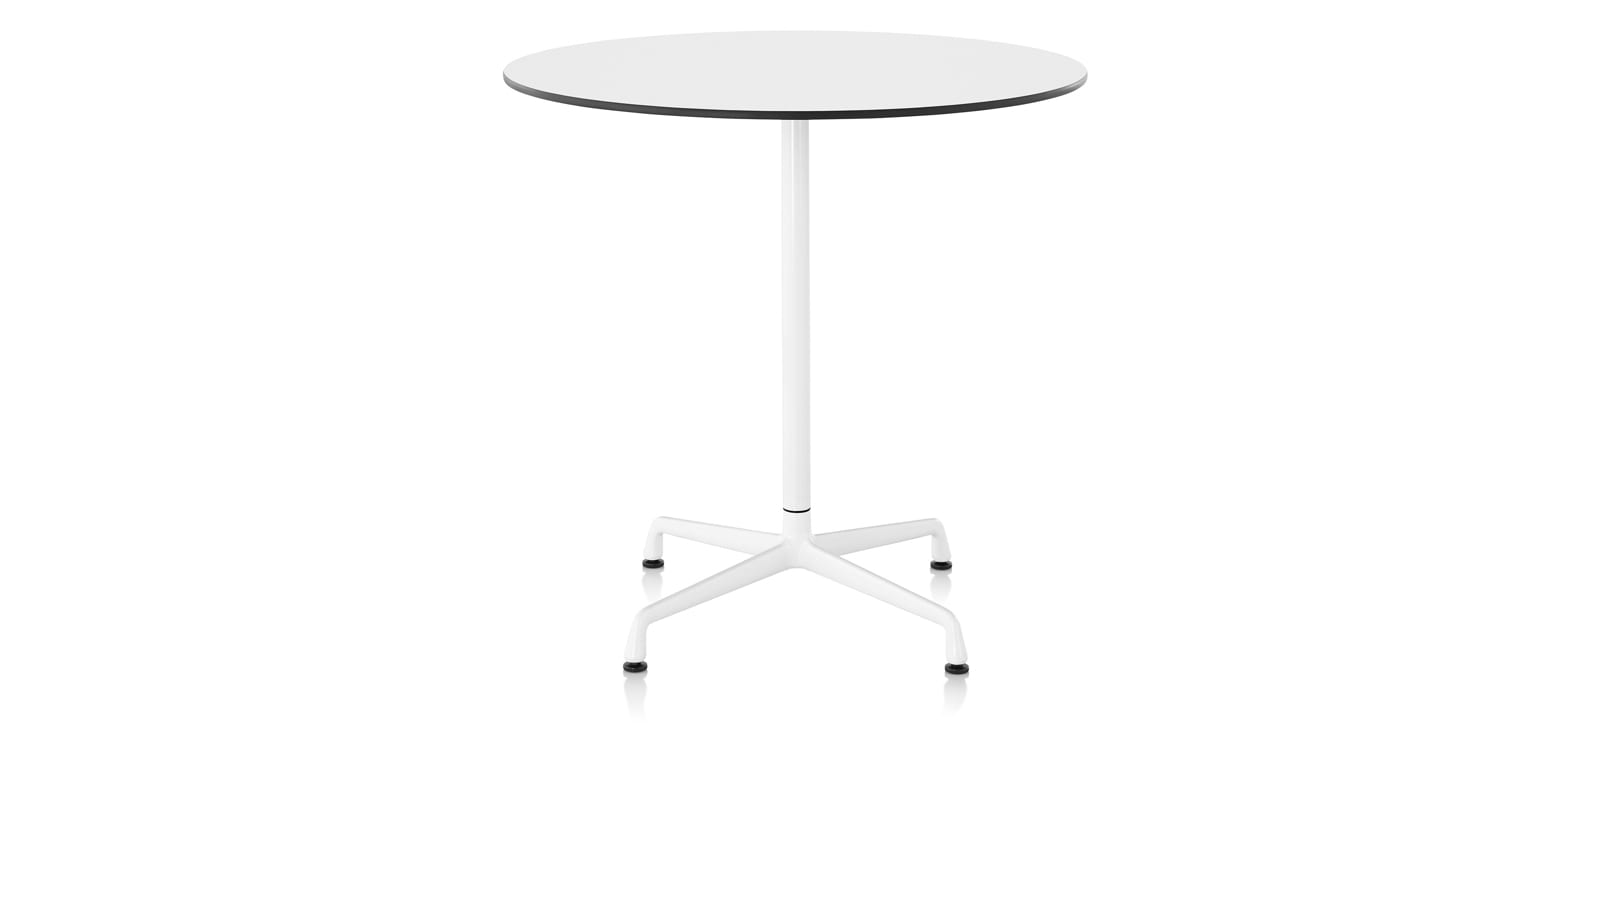 White sweep image of an Eames Standing-Height Table with round top.